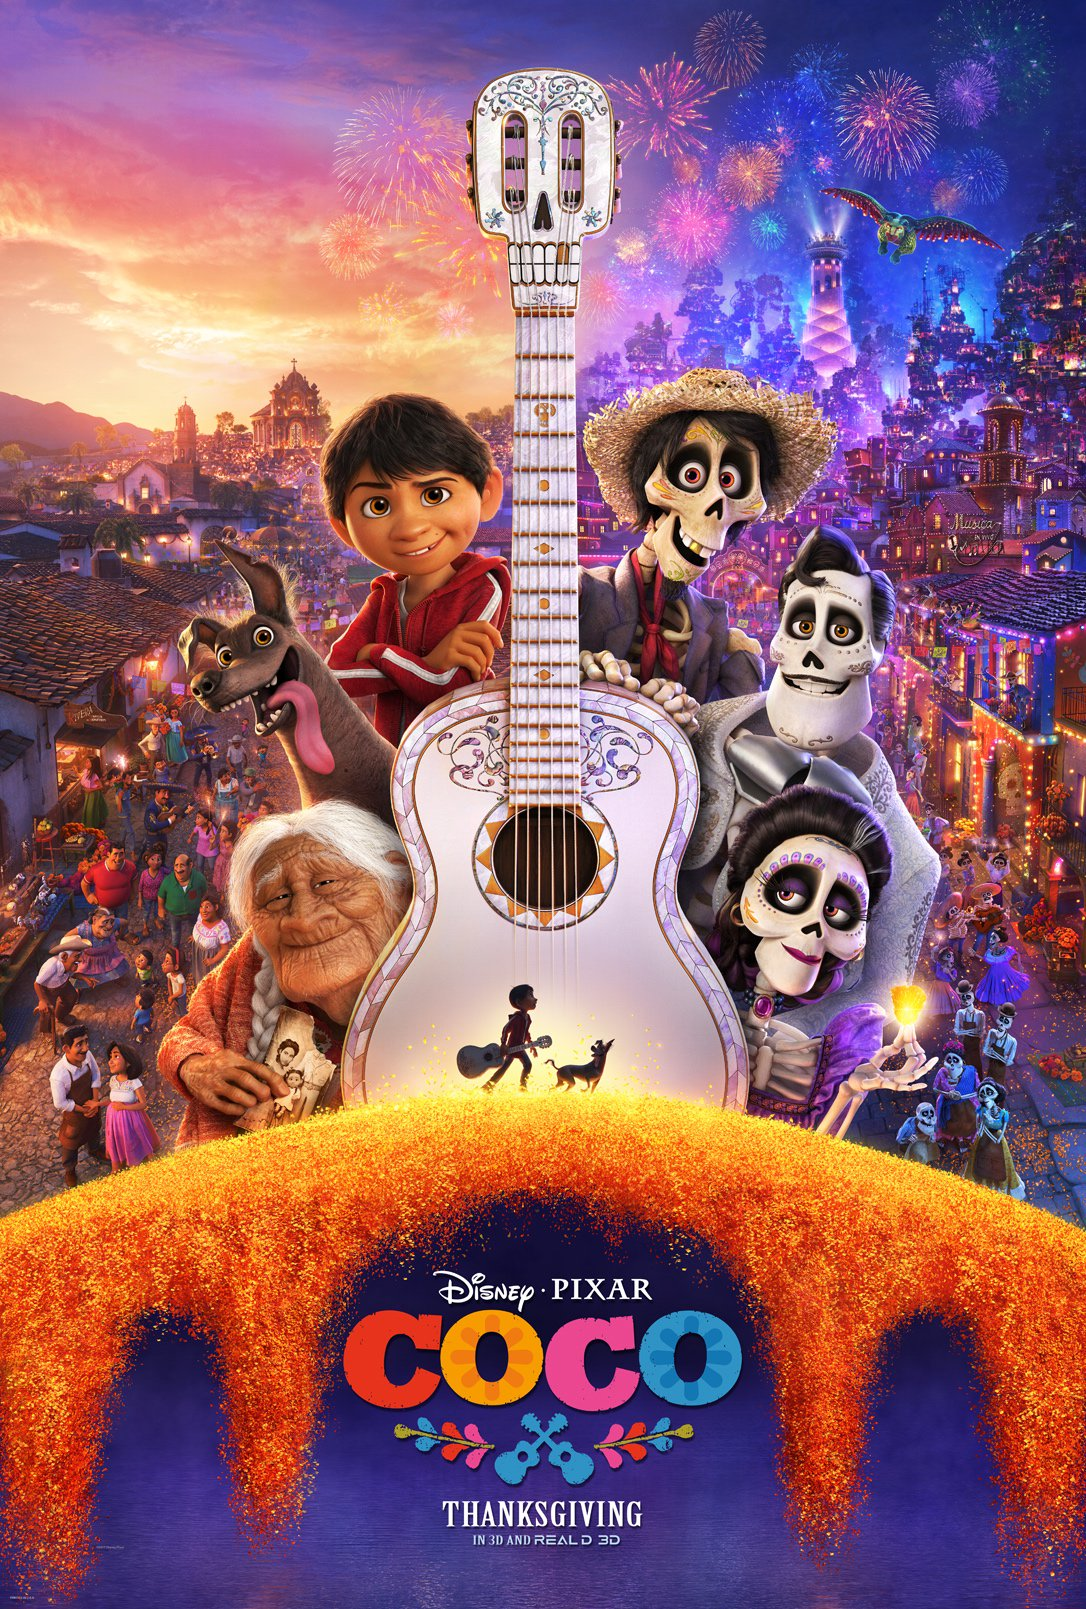 New Coco Clip Released By Disney And Pixar | Nothing But Geek